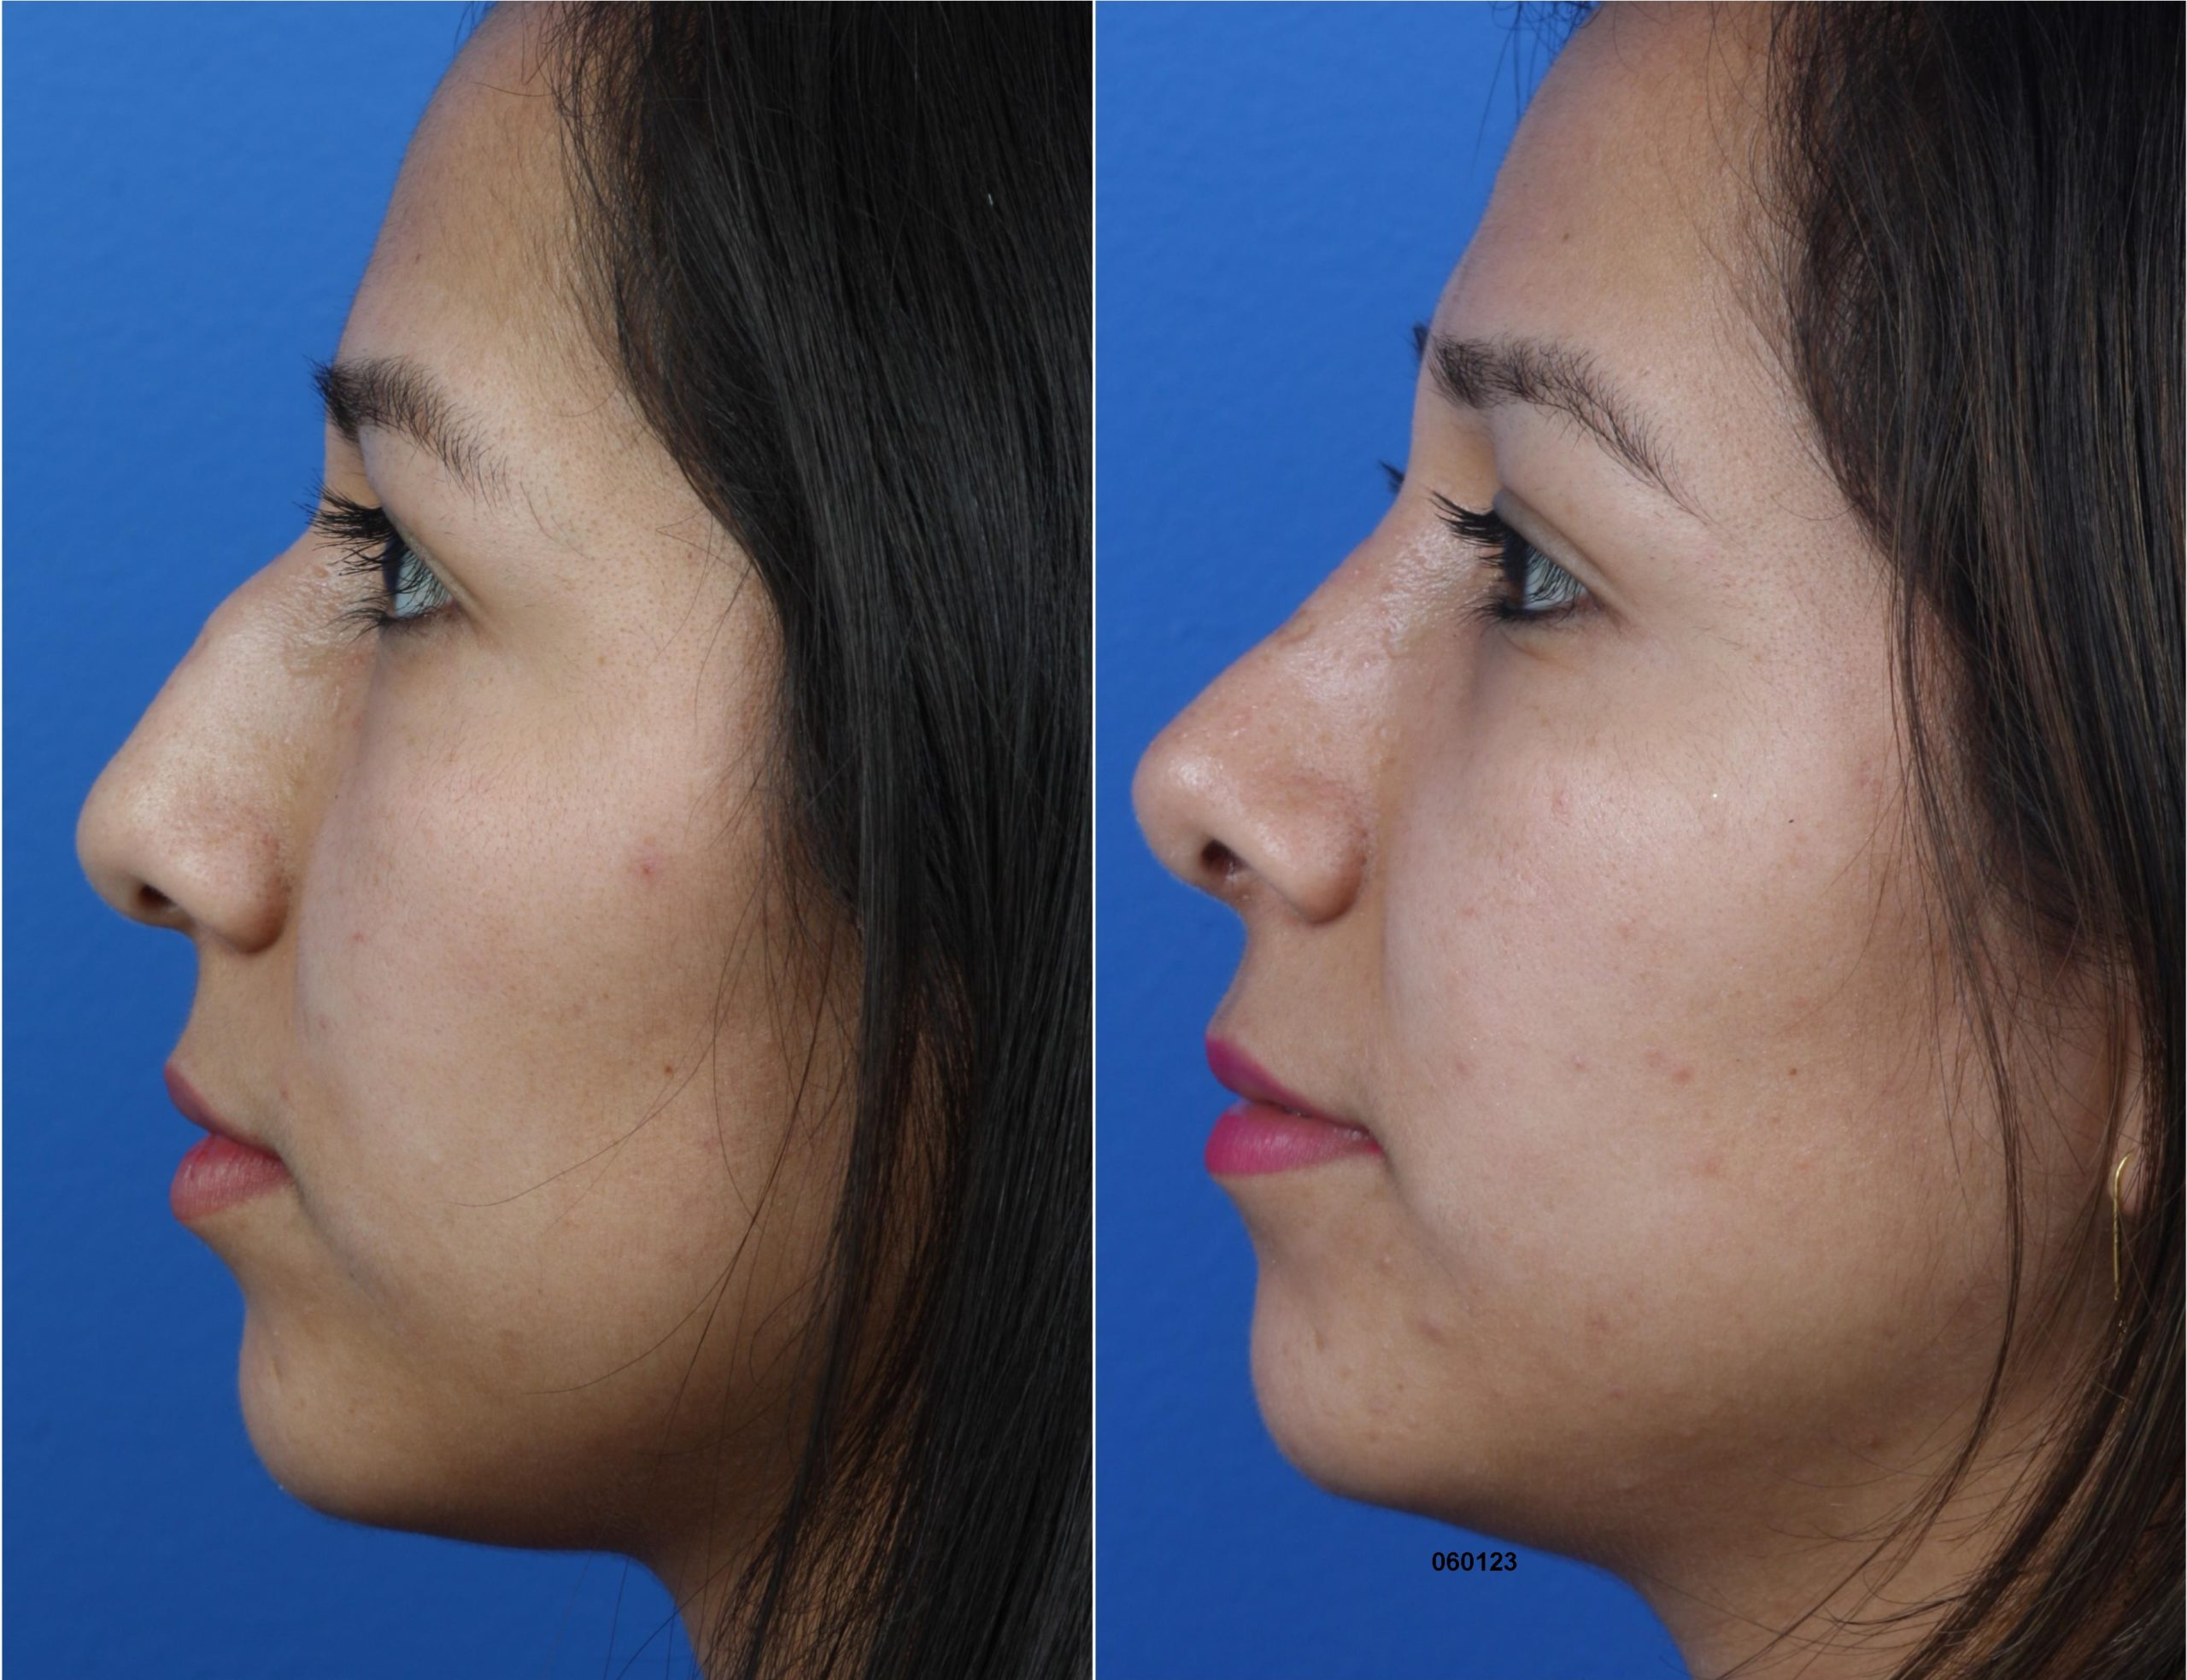 Rhinoplasty to Remove Hump on Nasal Bridge and Refine Tip by Dr. Miller